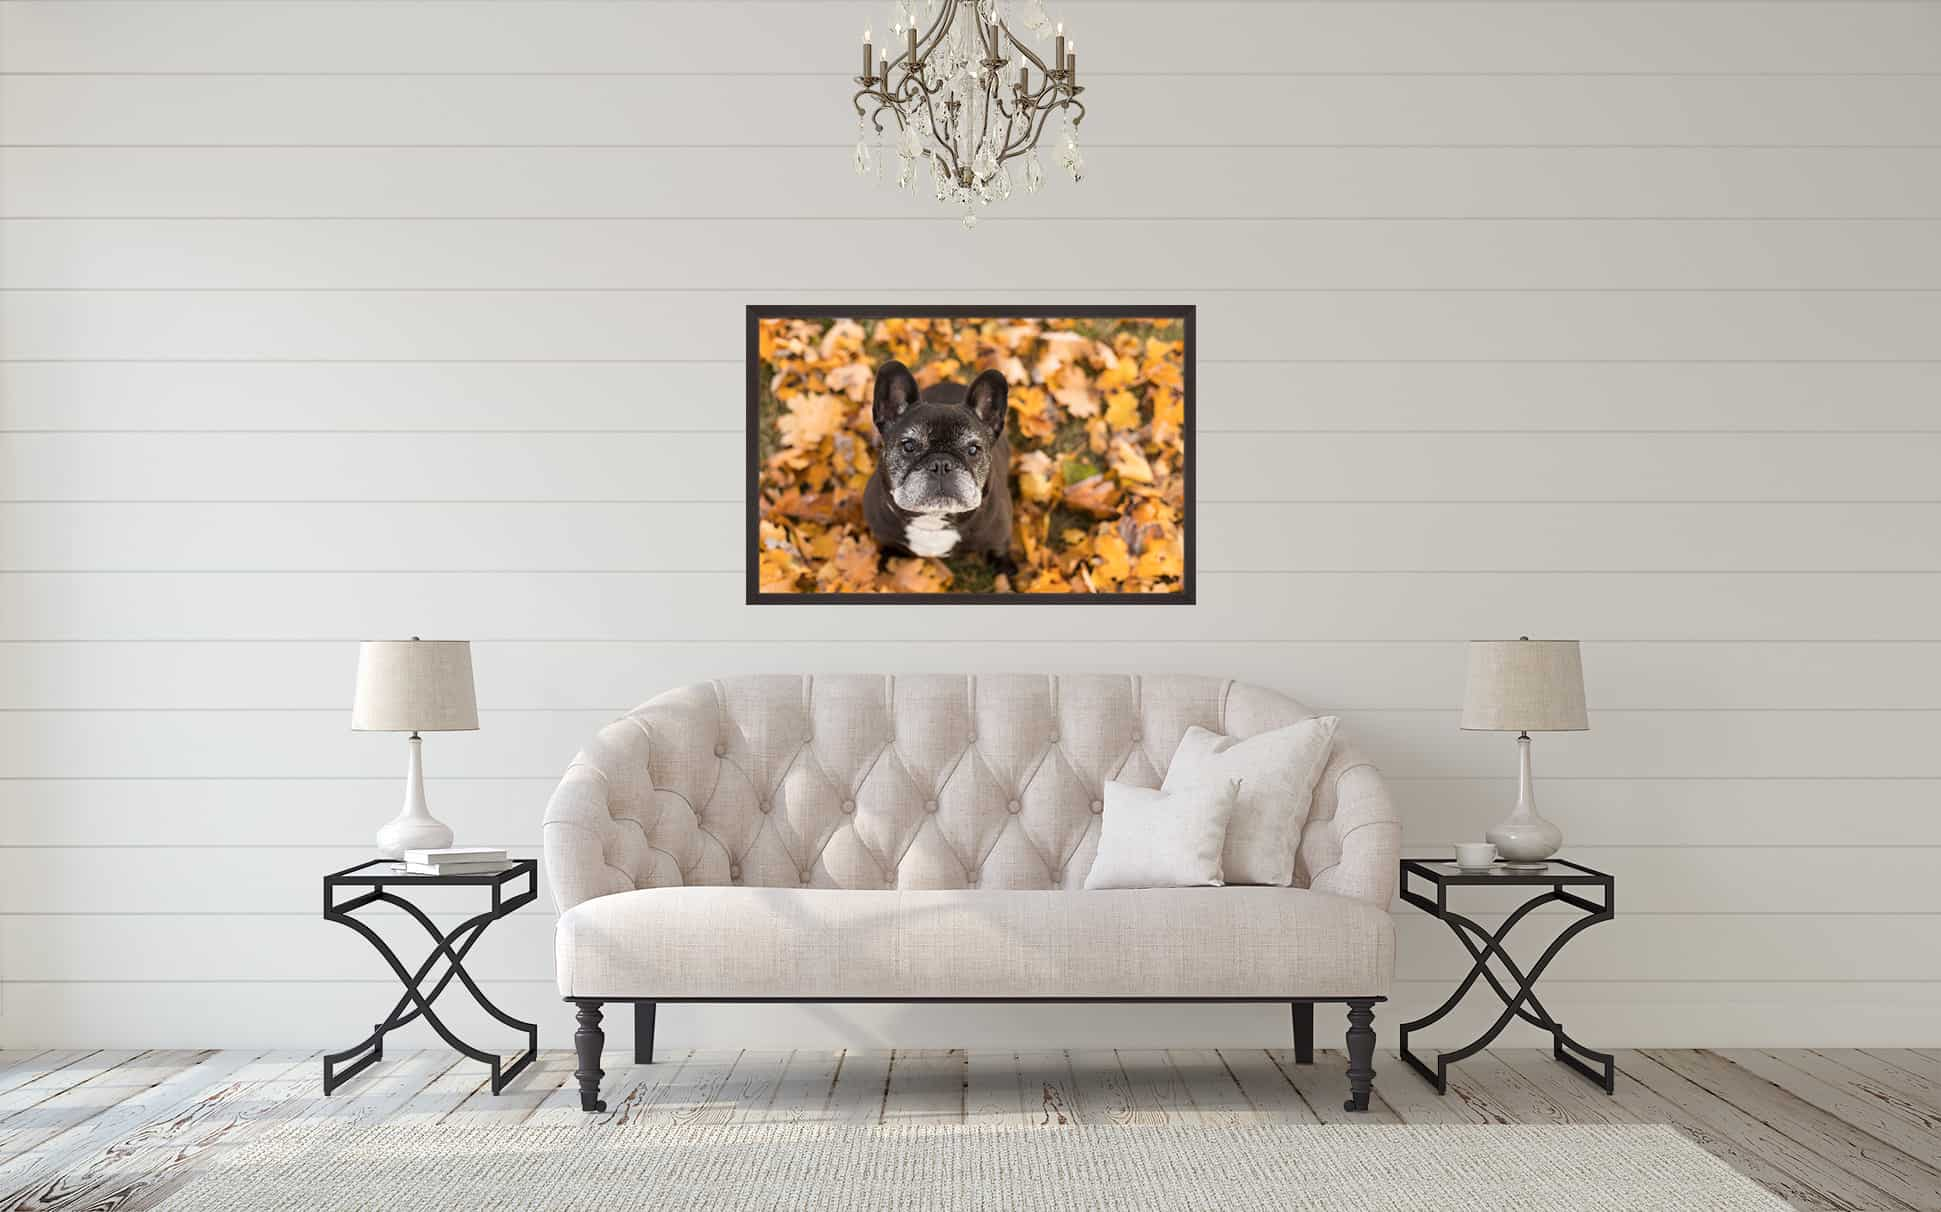 Framed Print of Black French Bulldog above Couch Shadow Dog Photography